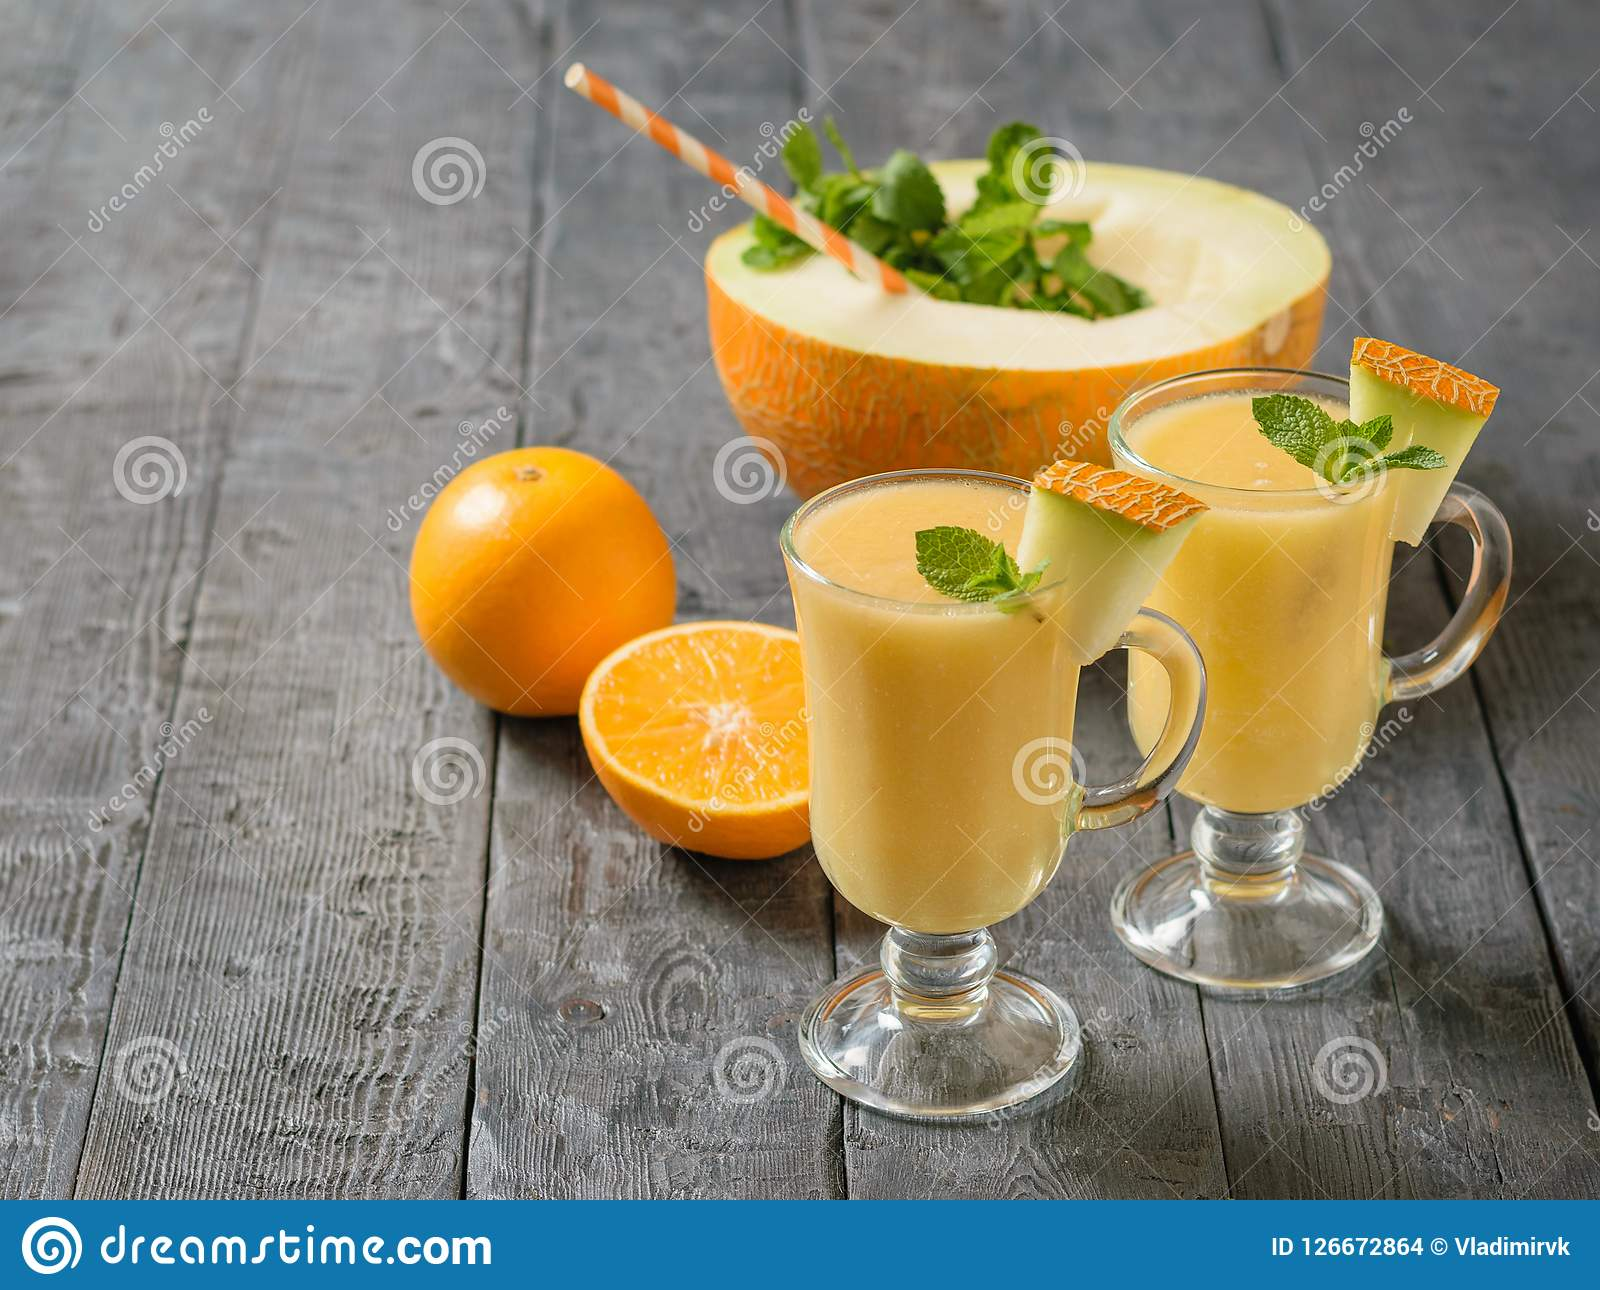 Download Two Glass Mugs With Melon Smoothie And A Half Melon With A Cocktail Tube On